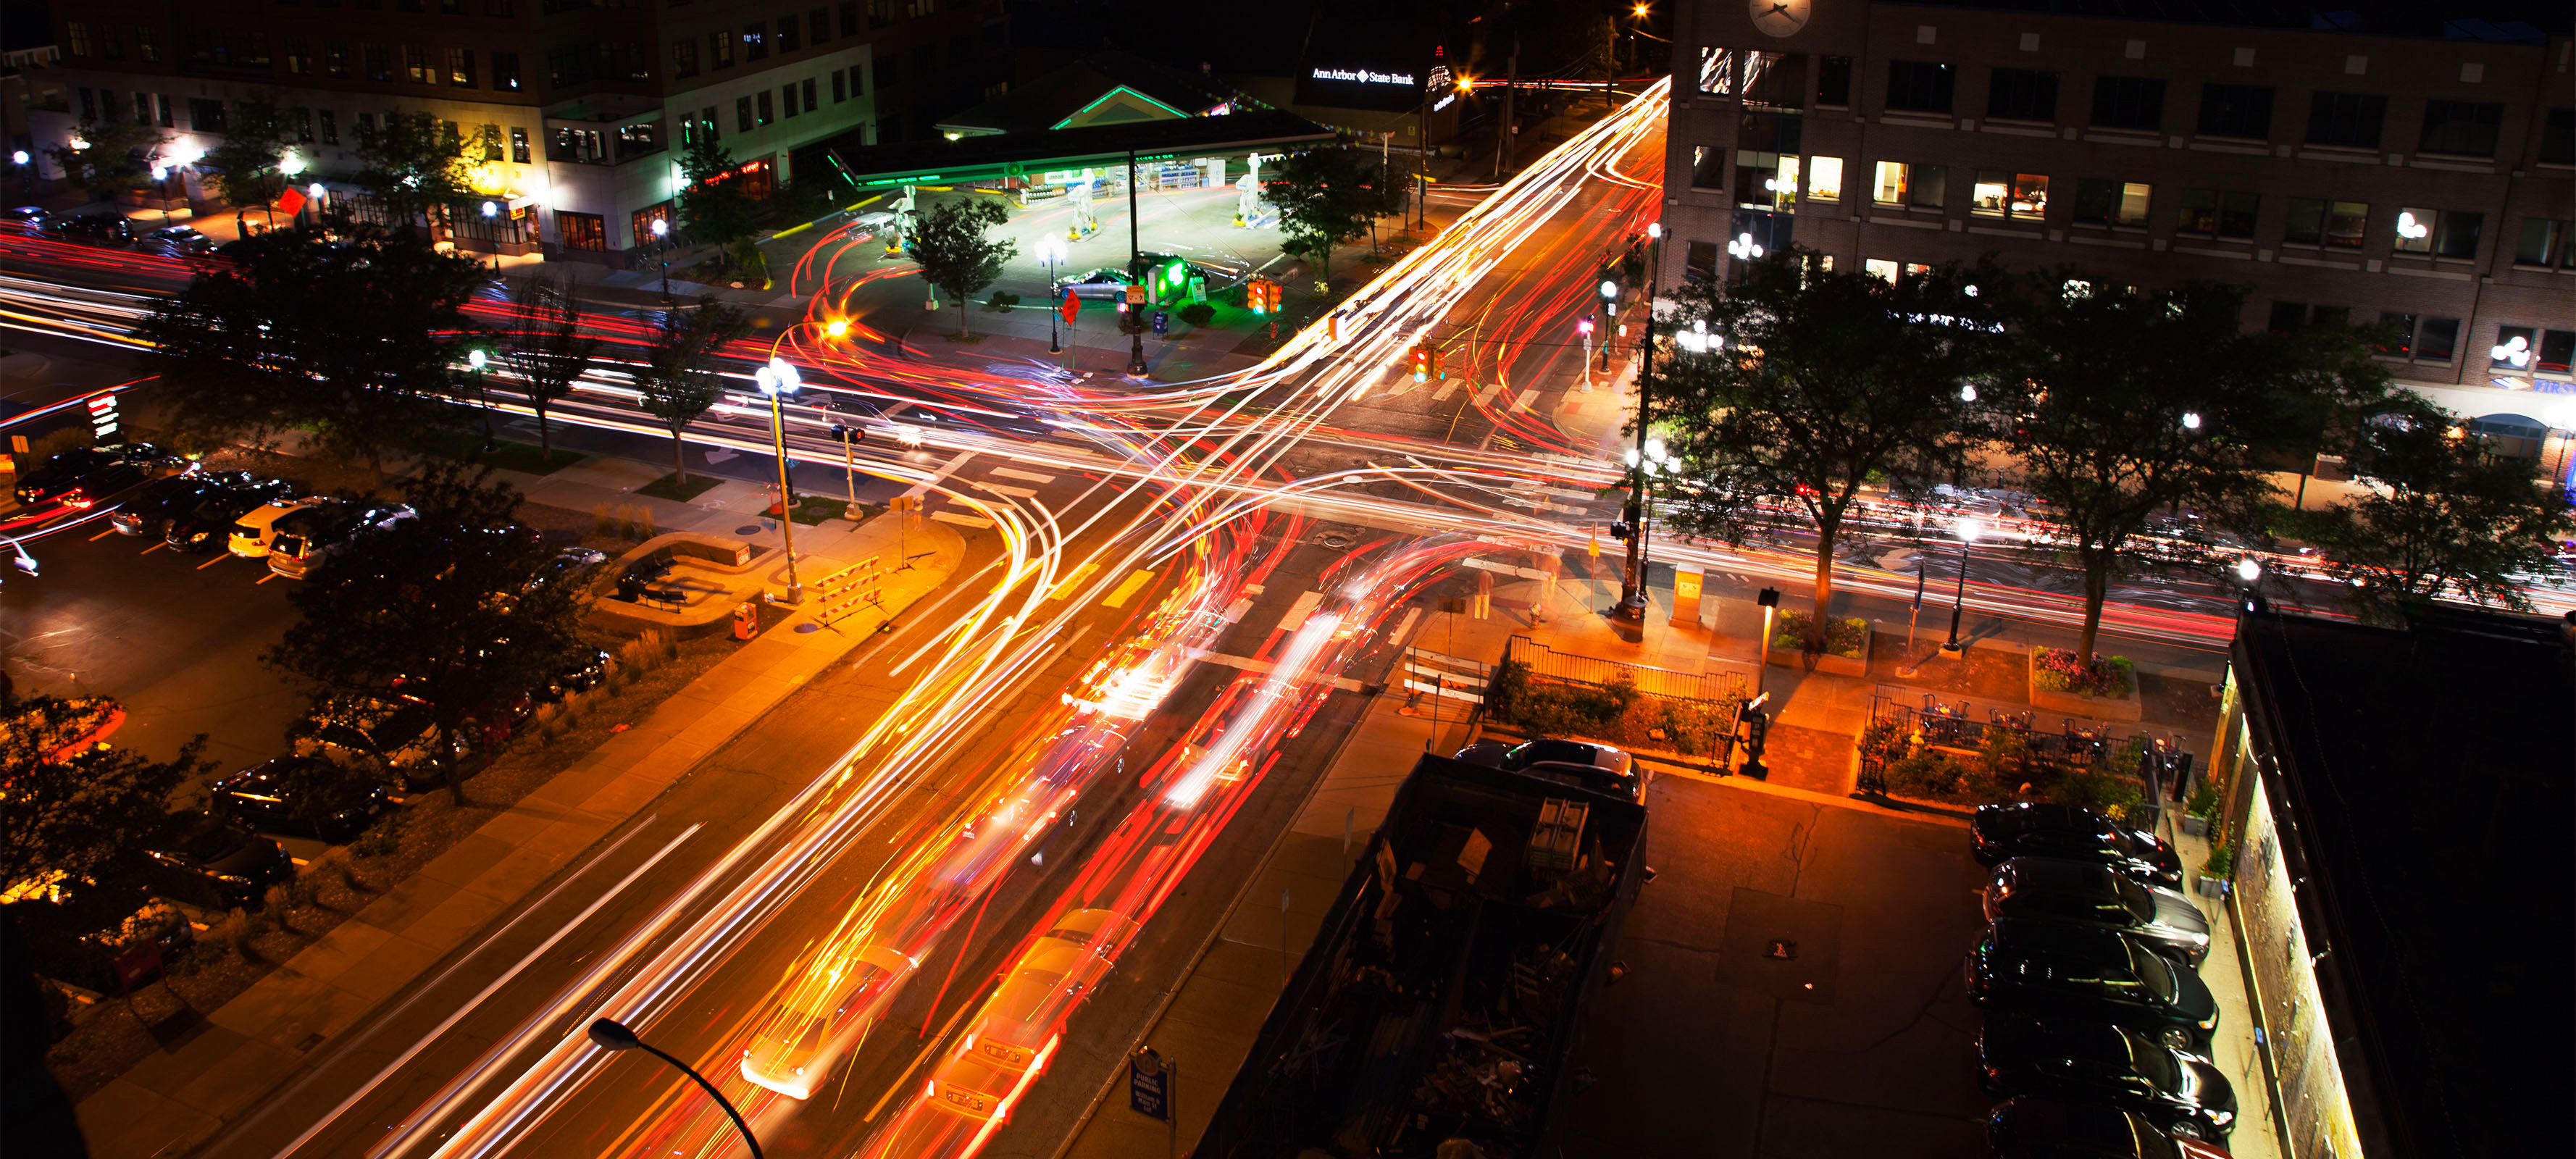 A timelapse of traffic at night in Ann Arbor.